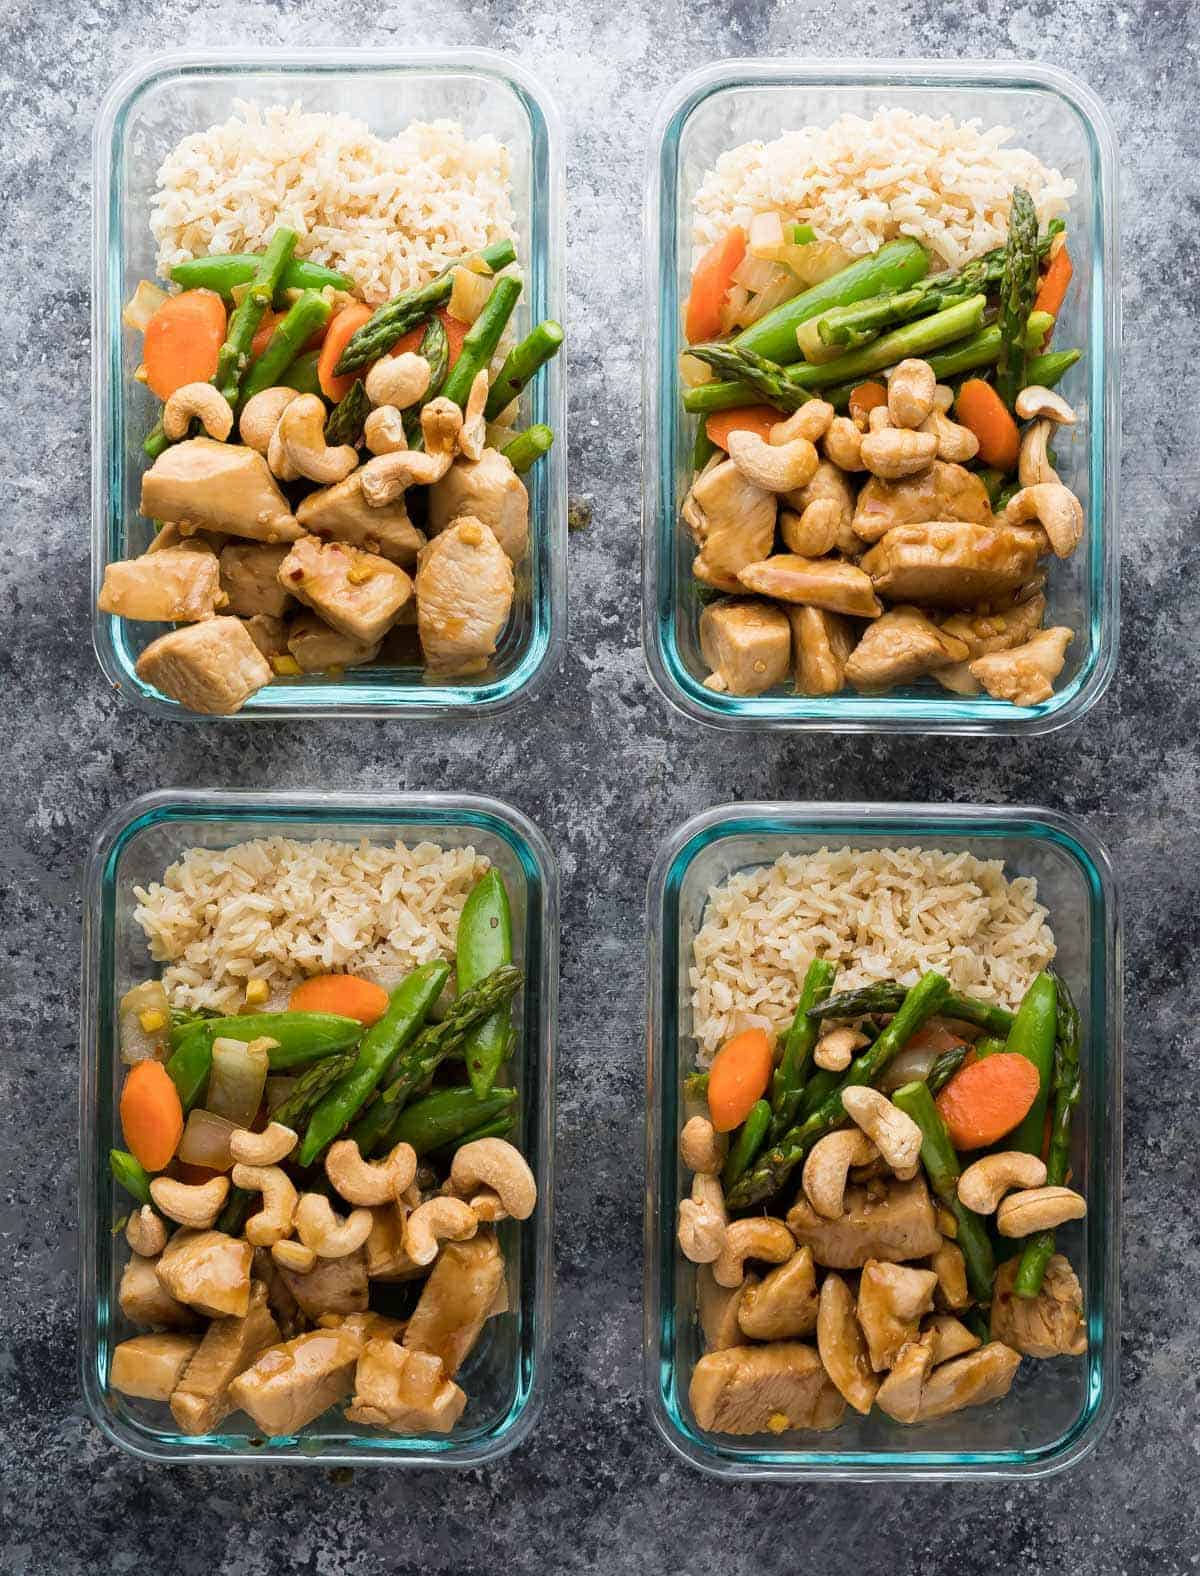 Maple ginger chicken meal prep lunch bowls are made ahead on the weekend so you have four delicious lunches waiting for you!